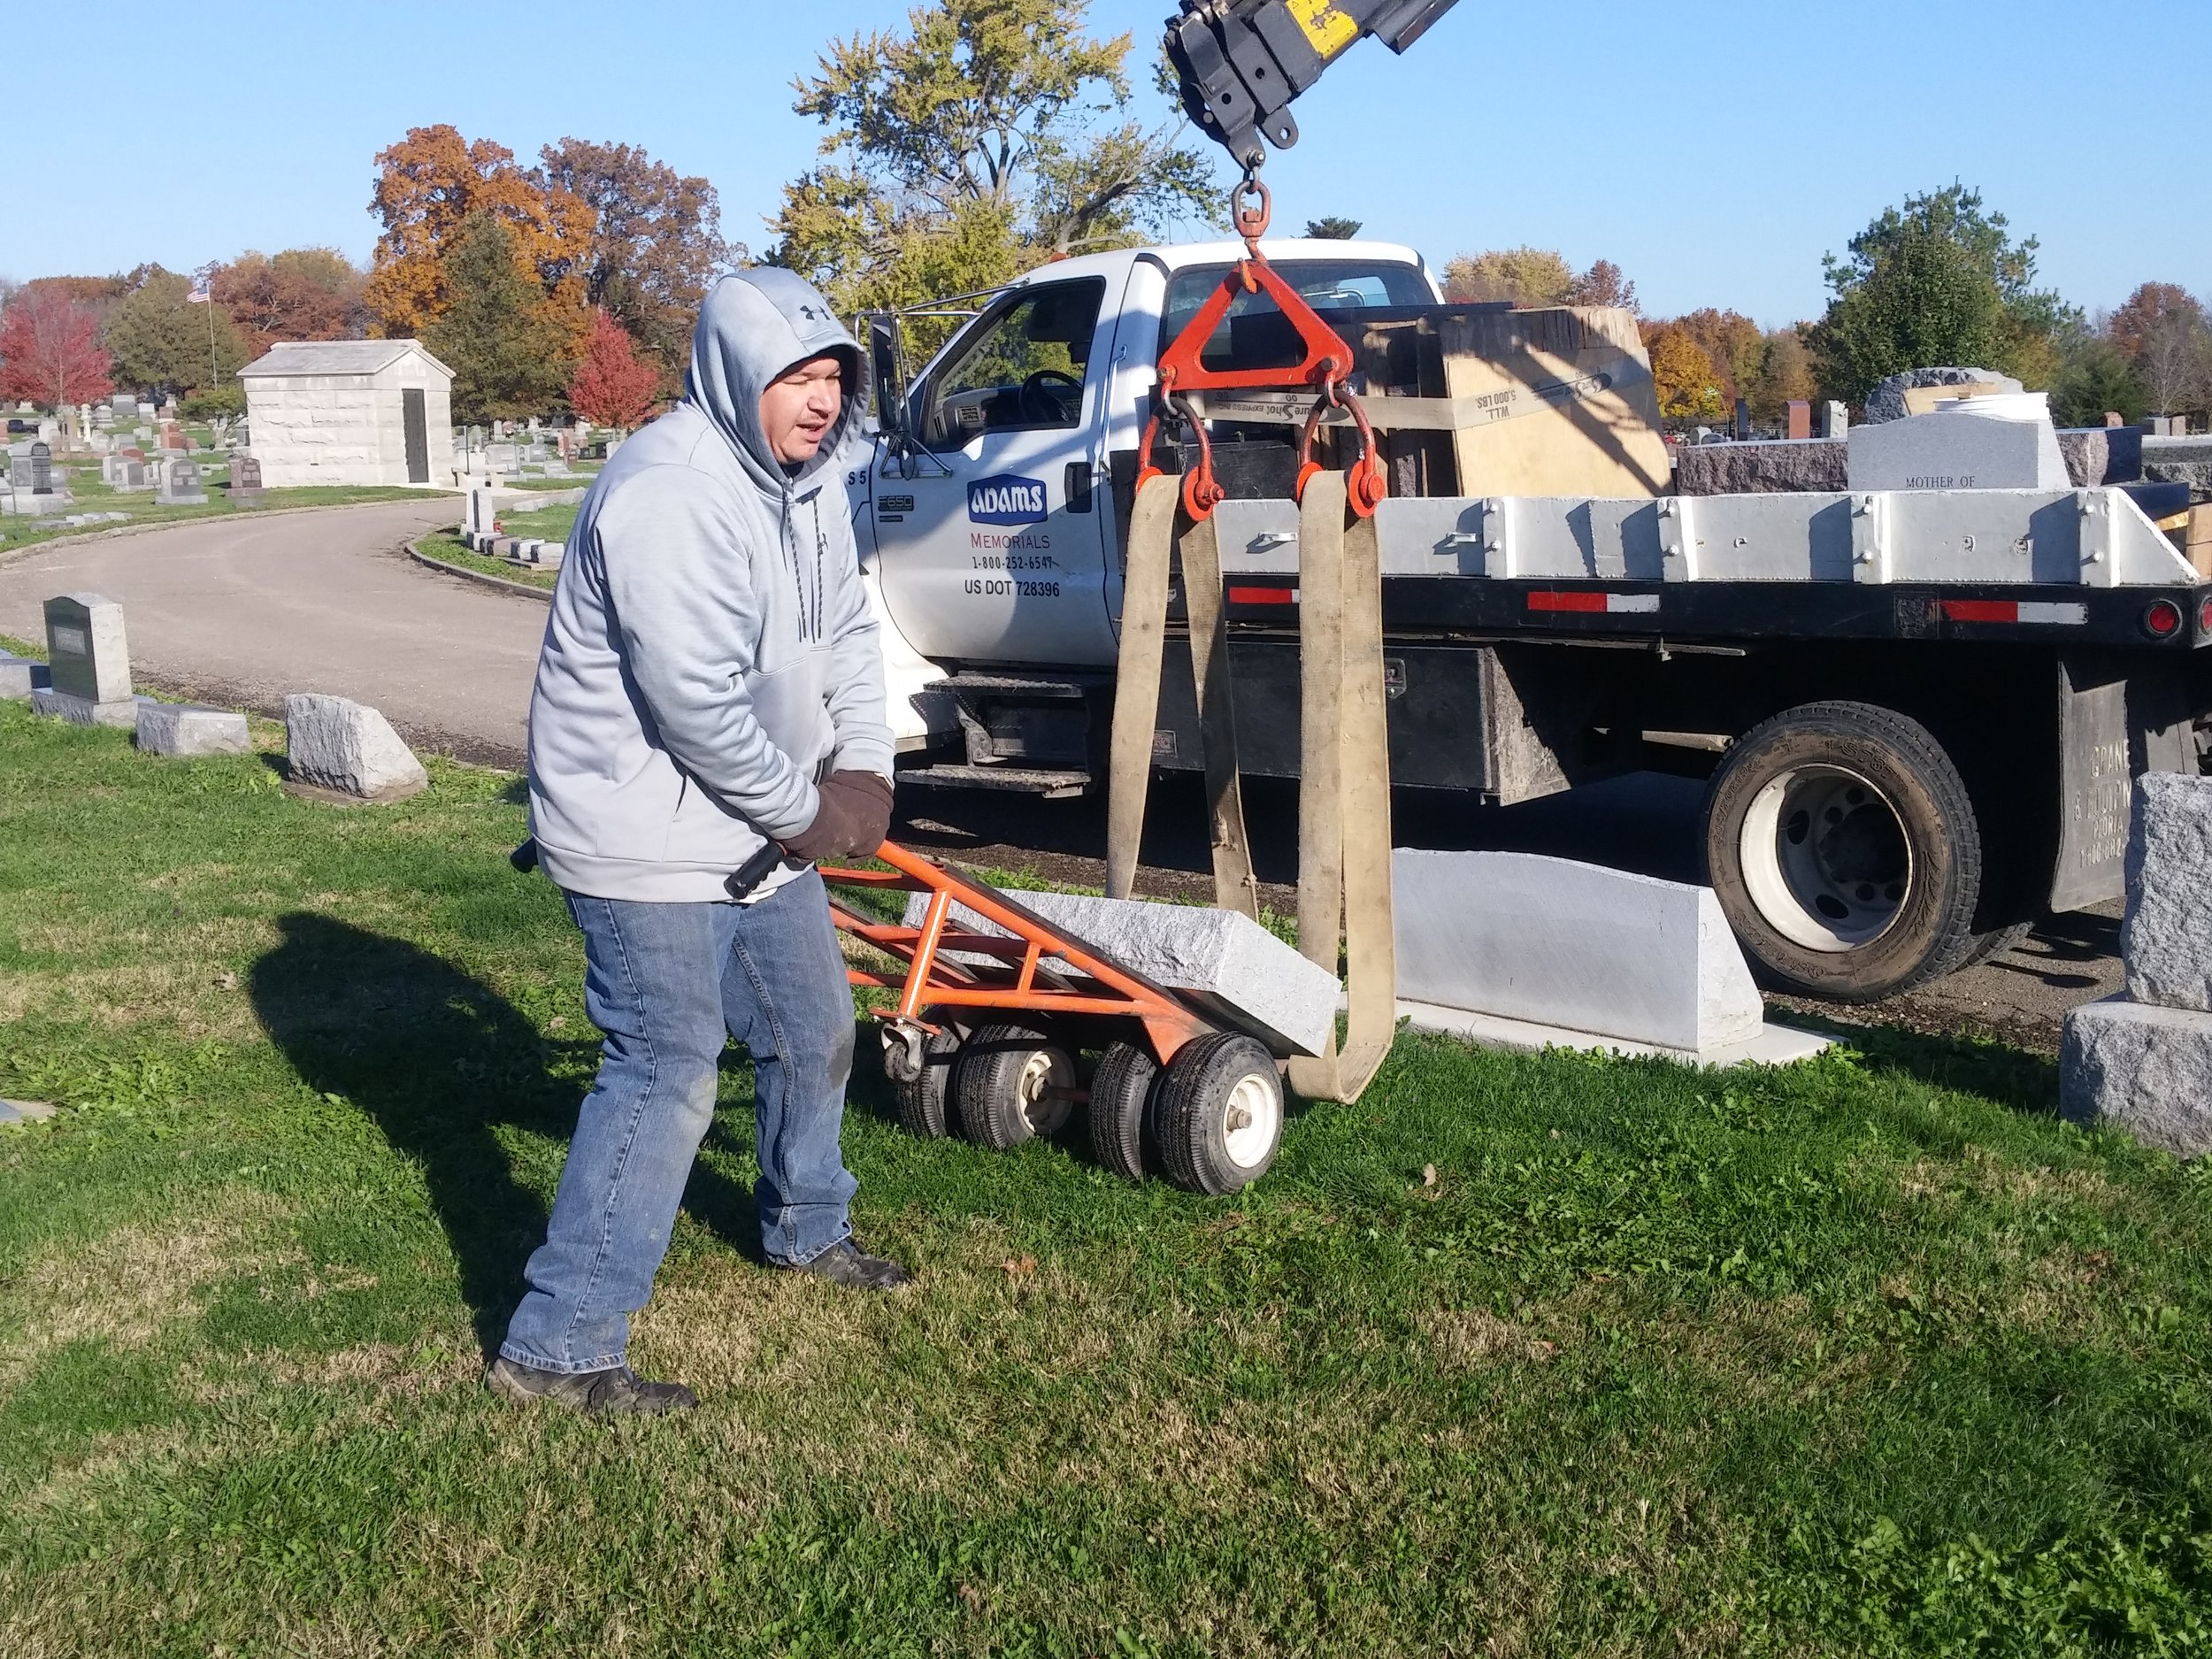 Moving stone with hand cart to proper location